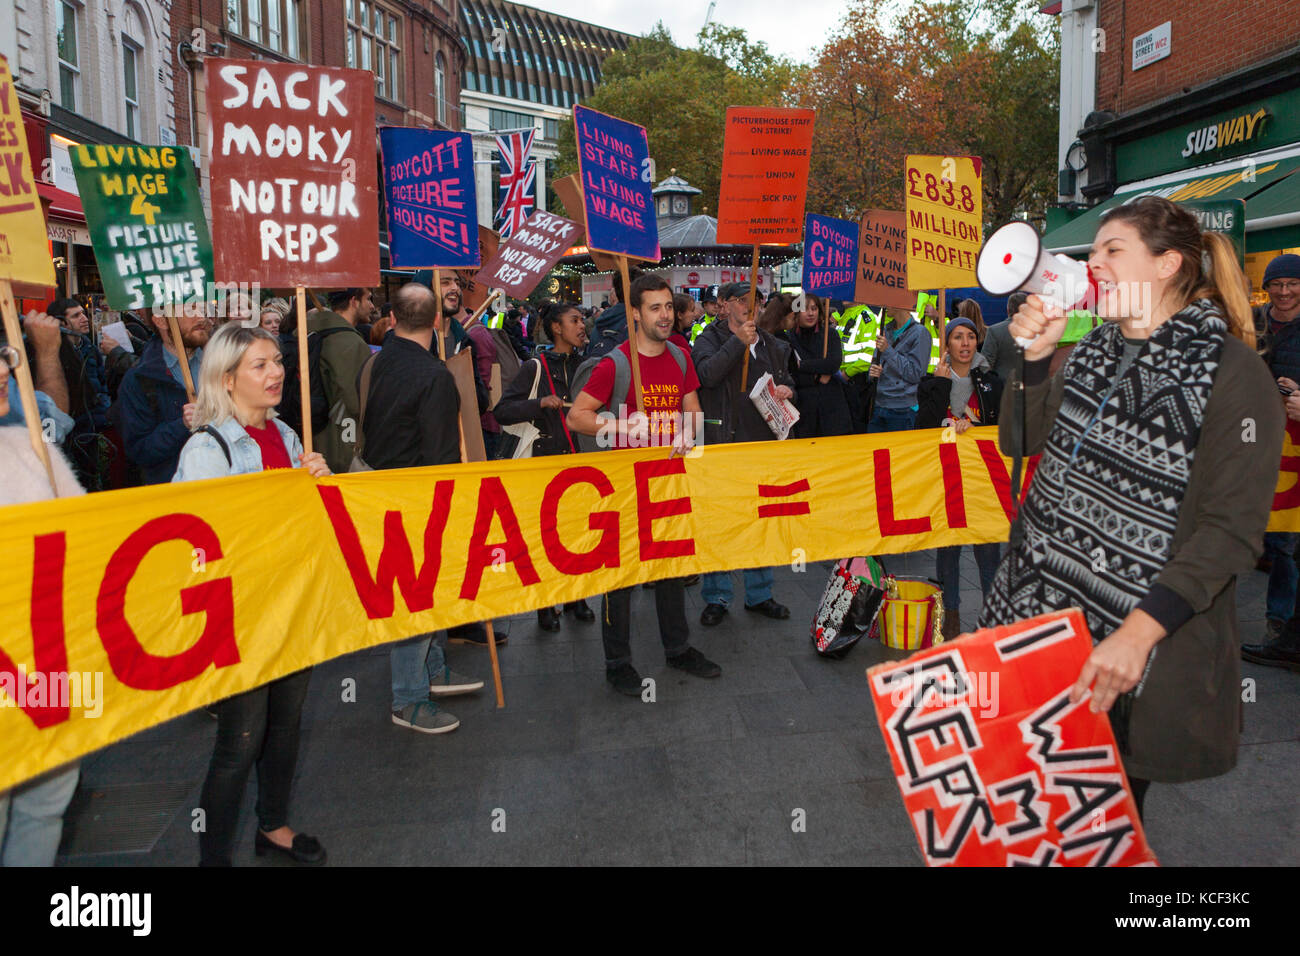 London, UK. 4th Oct, 2017. Striking Cineworld workers hold 'Living Wage' protest at BFI London Film Festival, - Stock Image